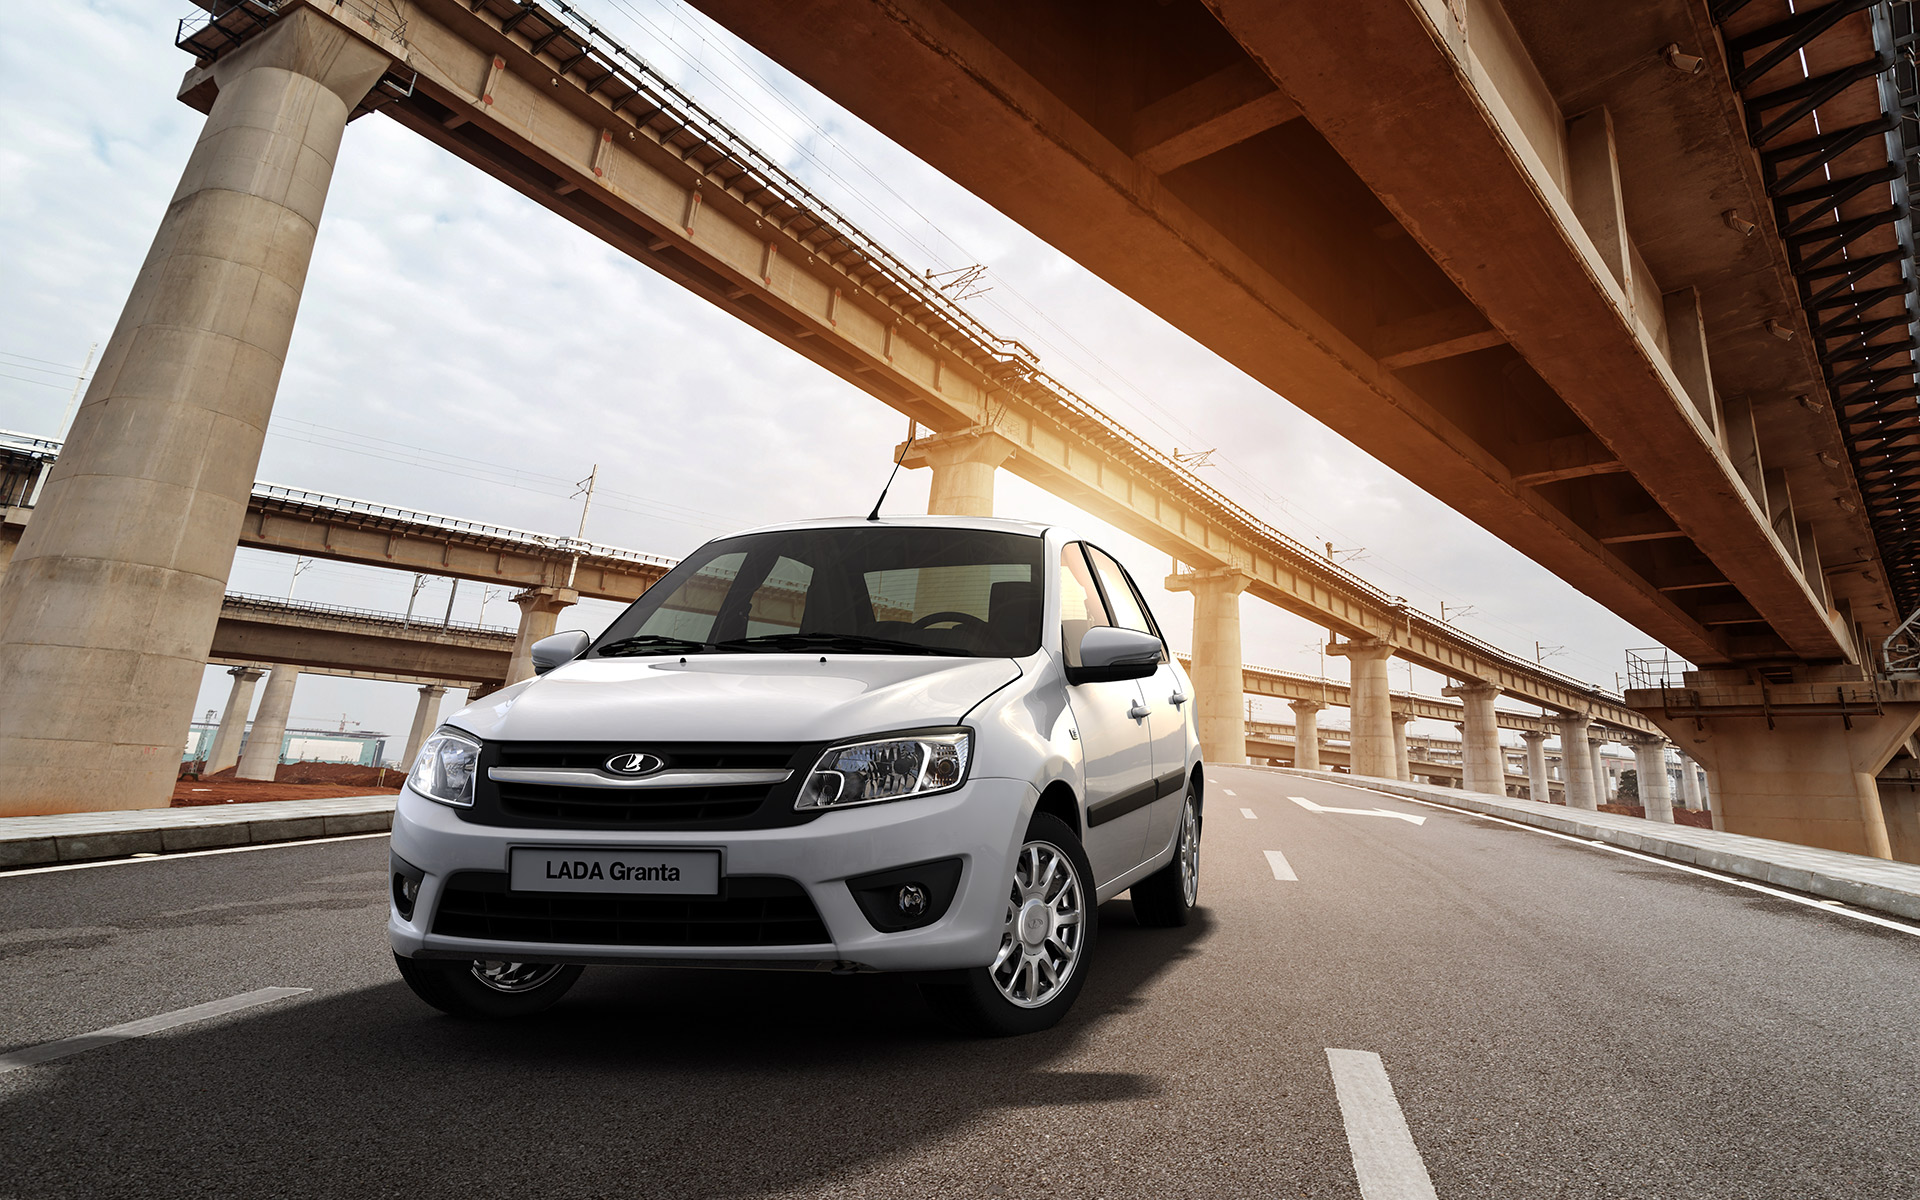 LADA Cars Retail Sales in International Markets Grew by 31% in 2017